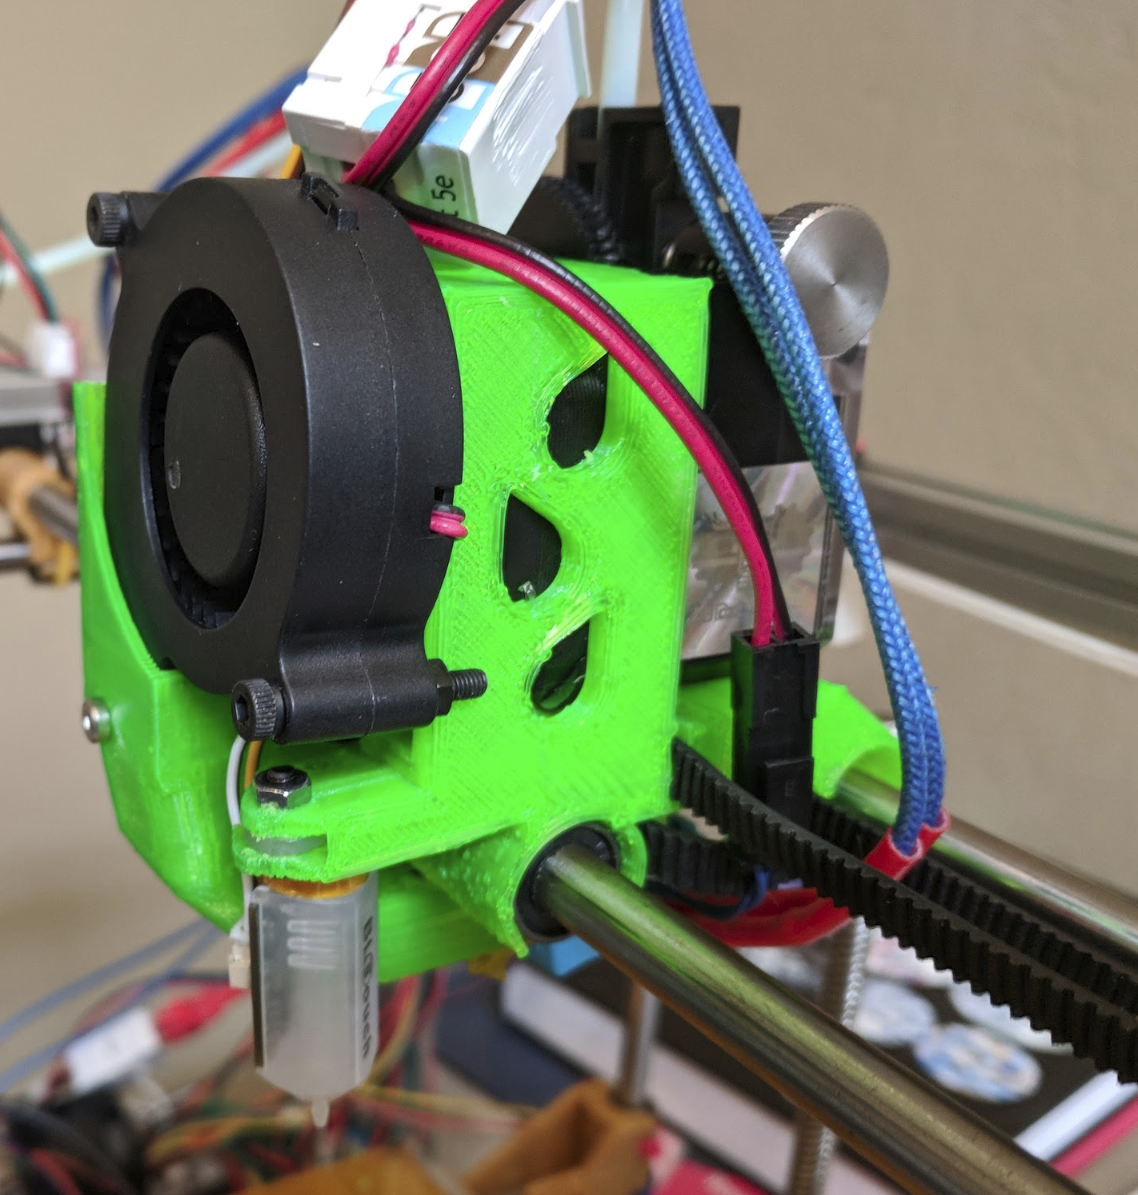 E3d Titan Extruder Mount For Fusebox Corexy By Phord Thingiverse Fuse Box Location Sep 4 2018 View Original